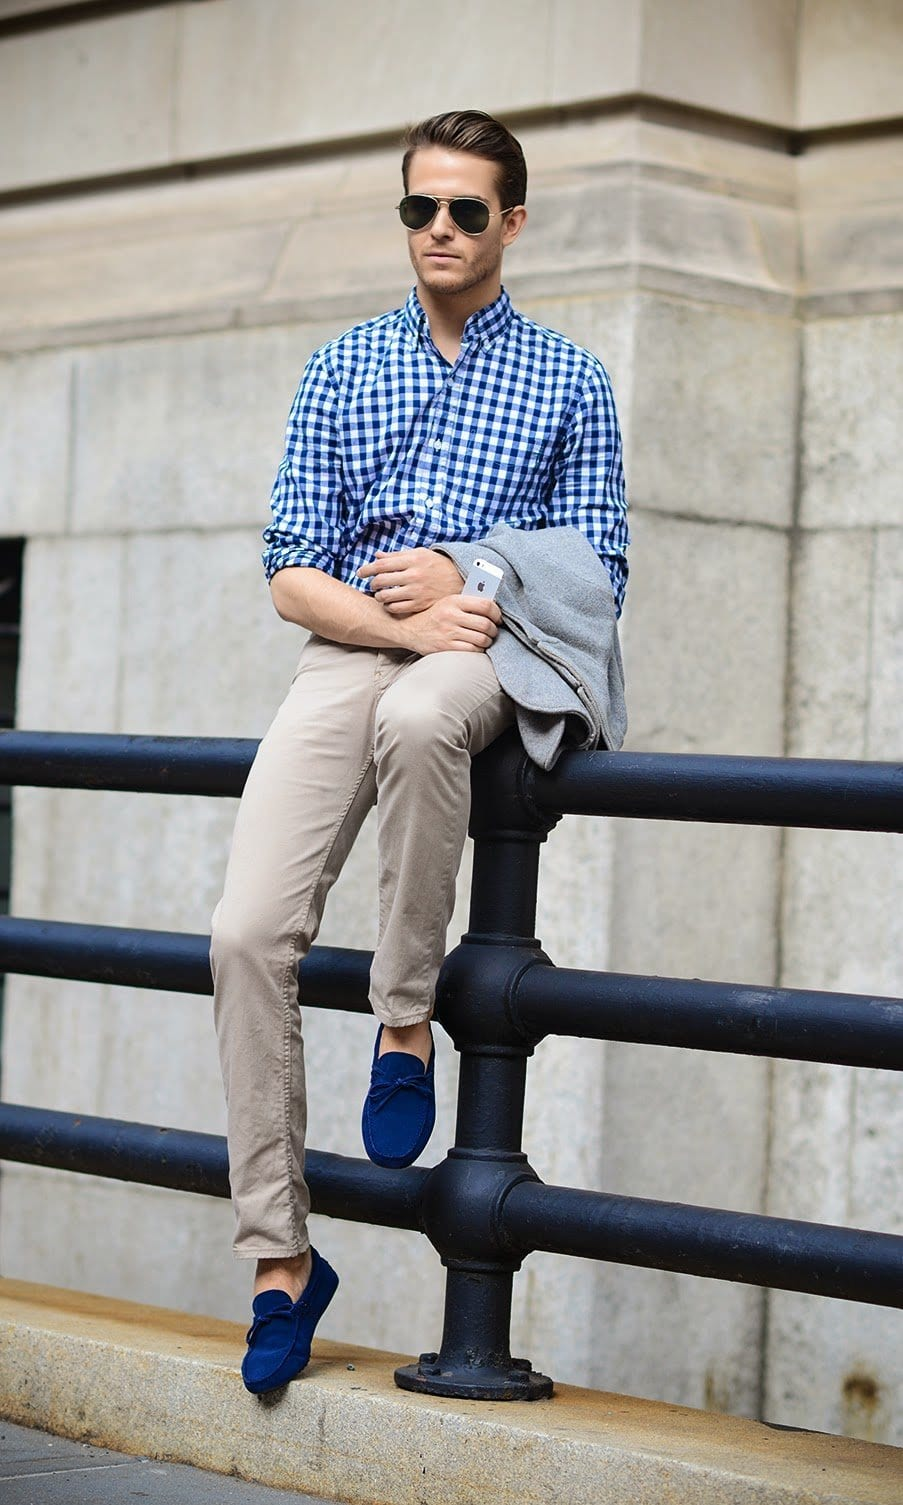 975cd03421d 16 Cool Summer Outfit Ideas for Men